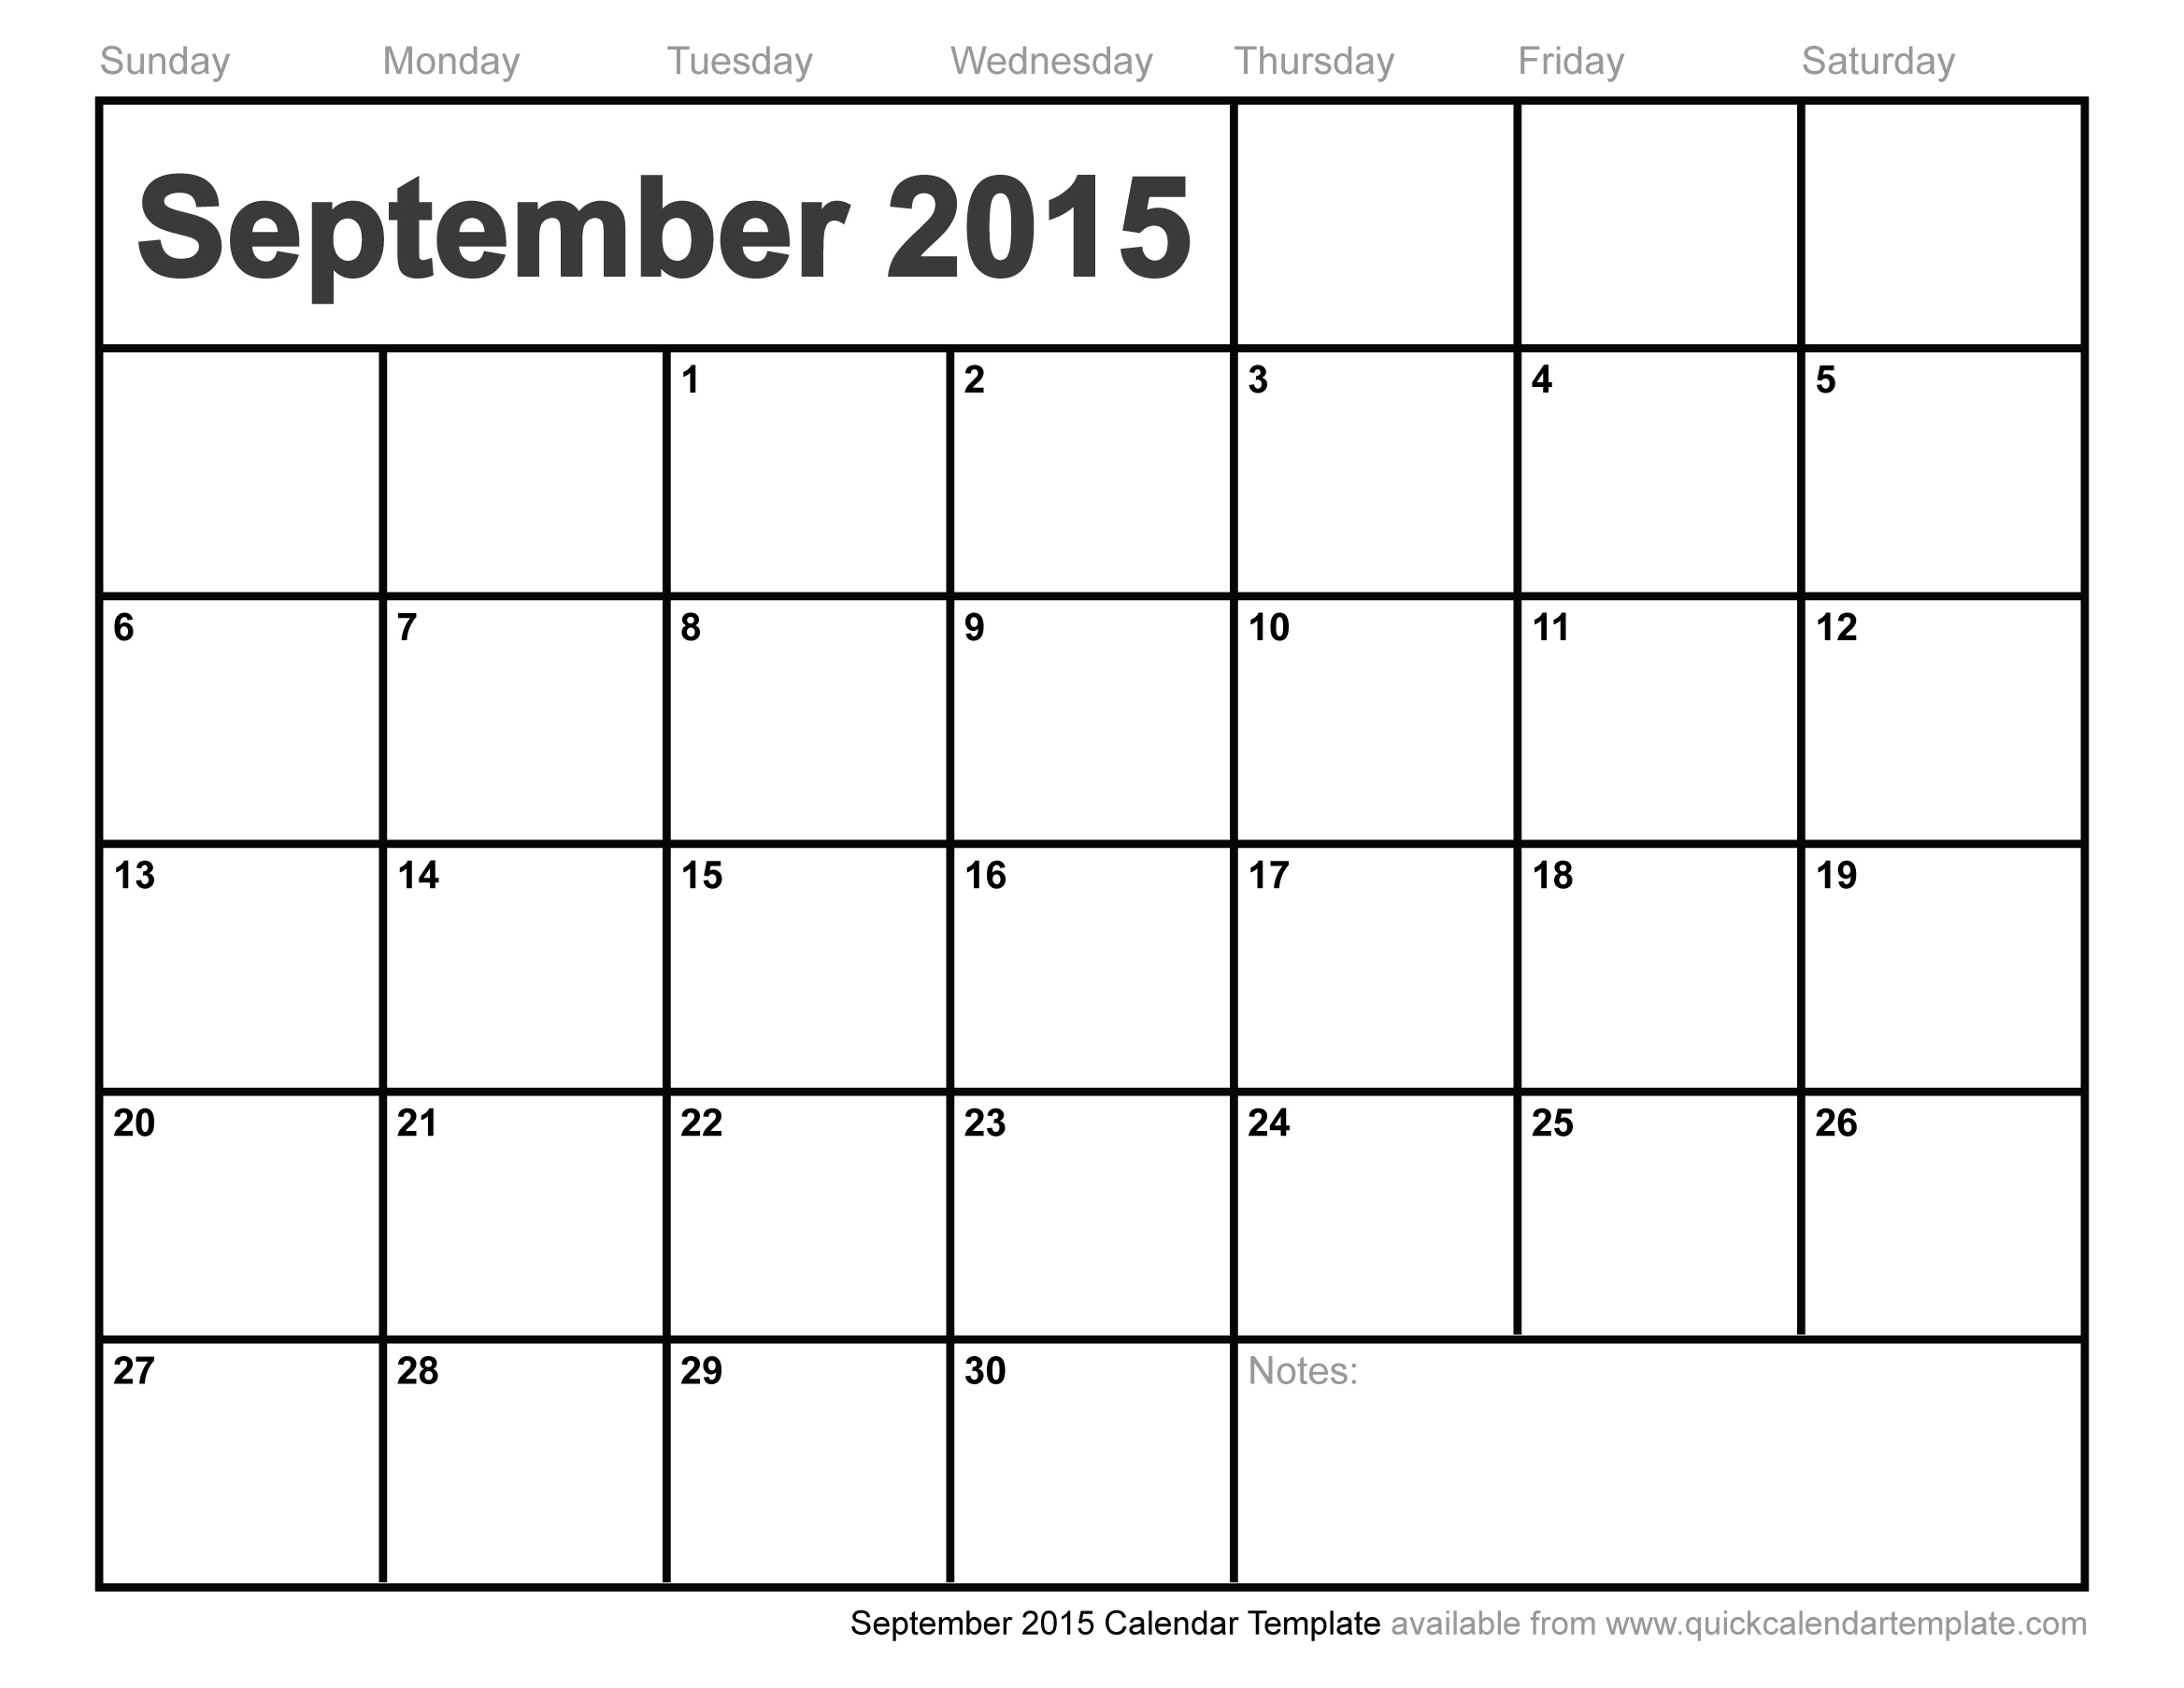 5 Images of September 2015 Calendar Printable Template